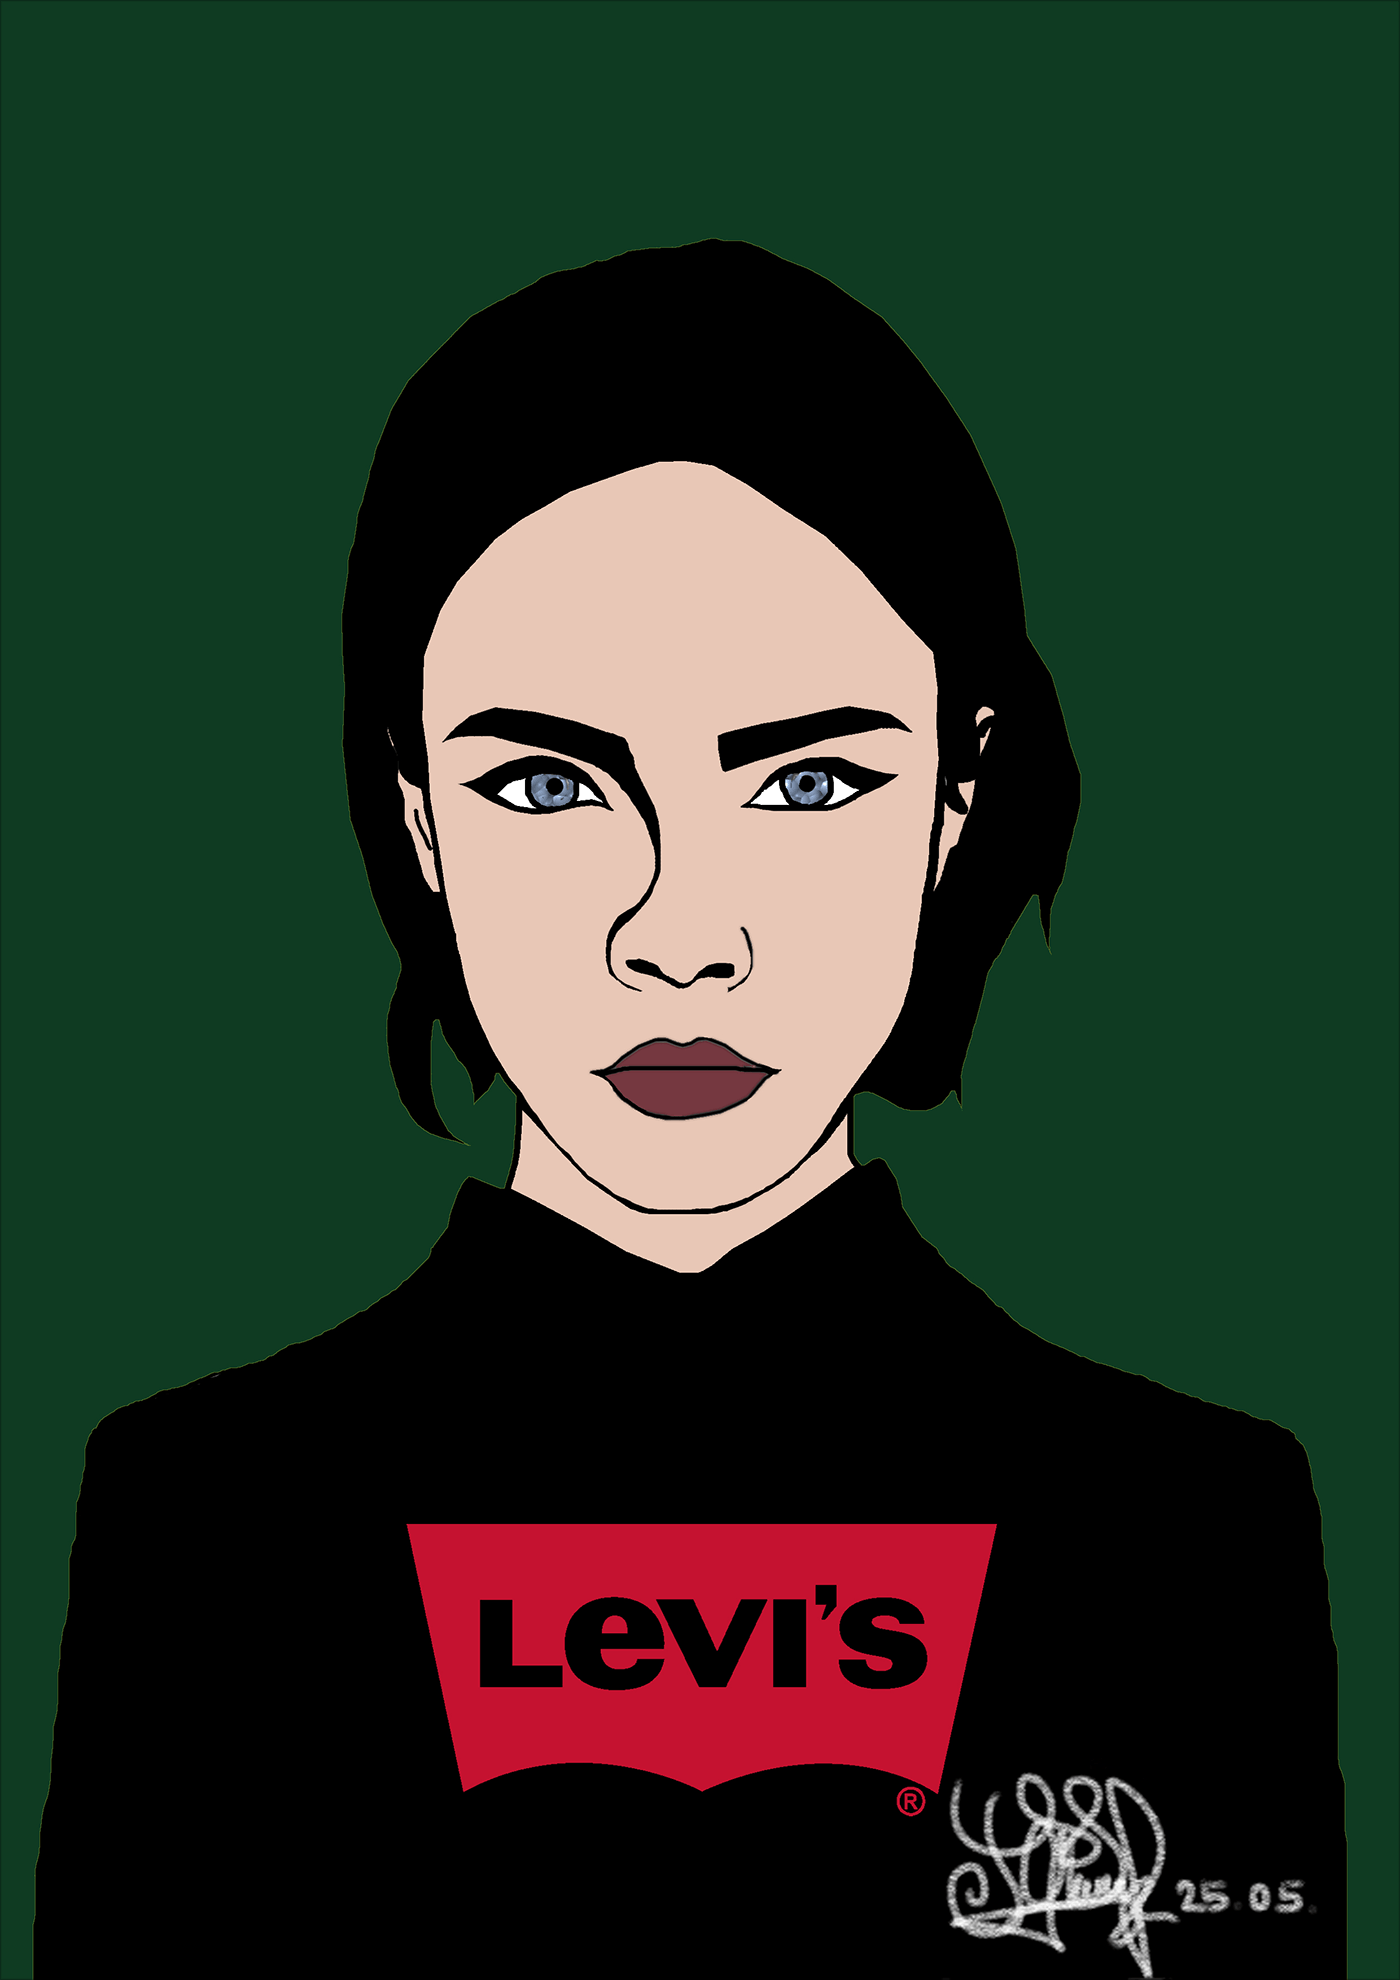 levisgirl - Pop Art and Canvas